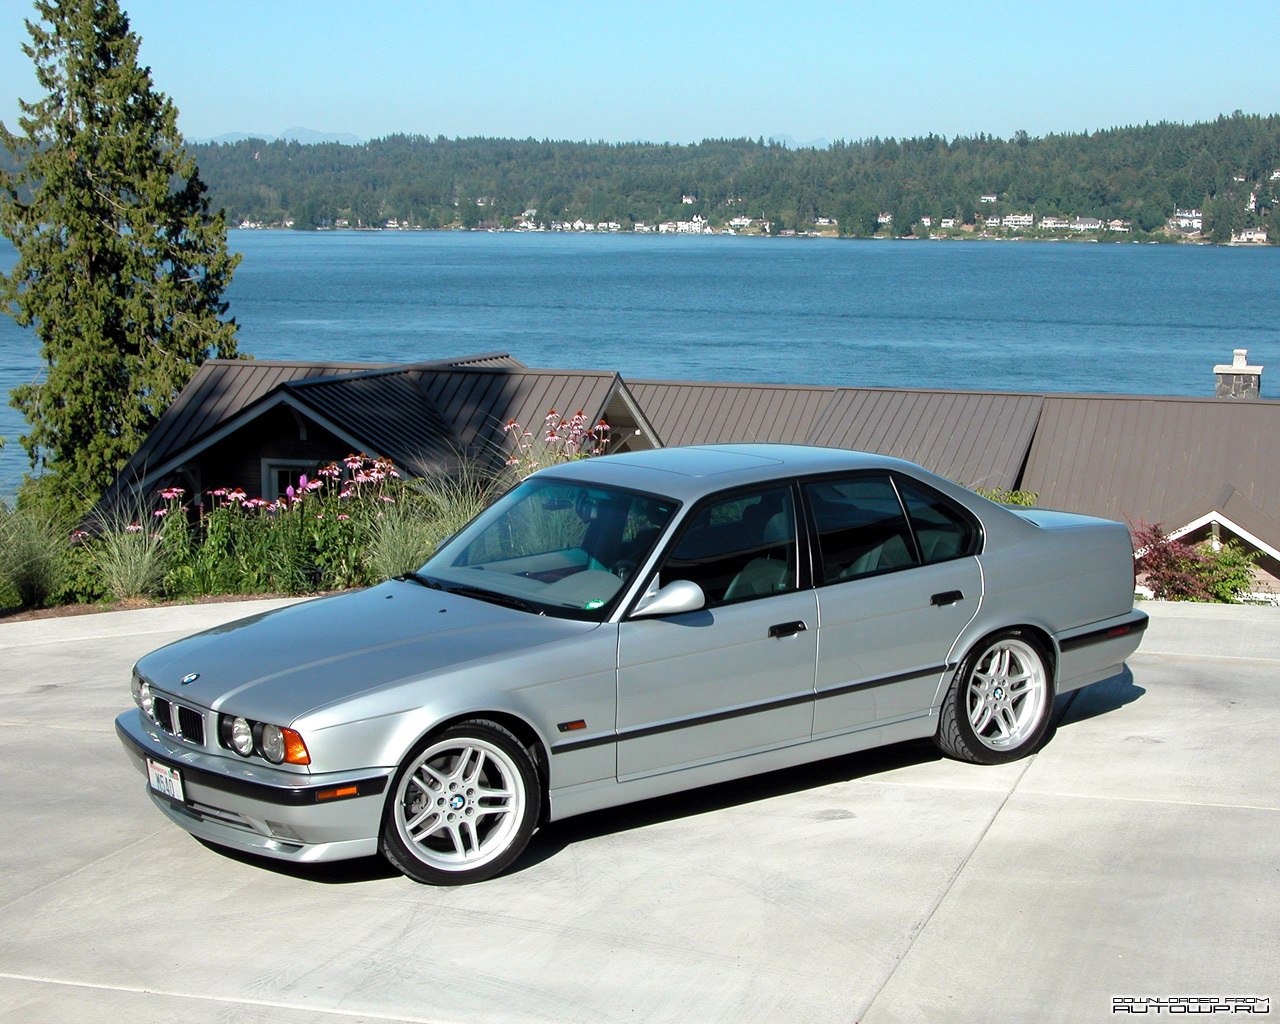 Bmw M5 1994 Review Amazing Pictures And Images Look At The Car